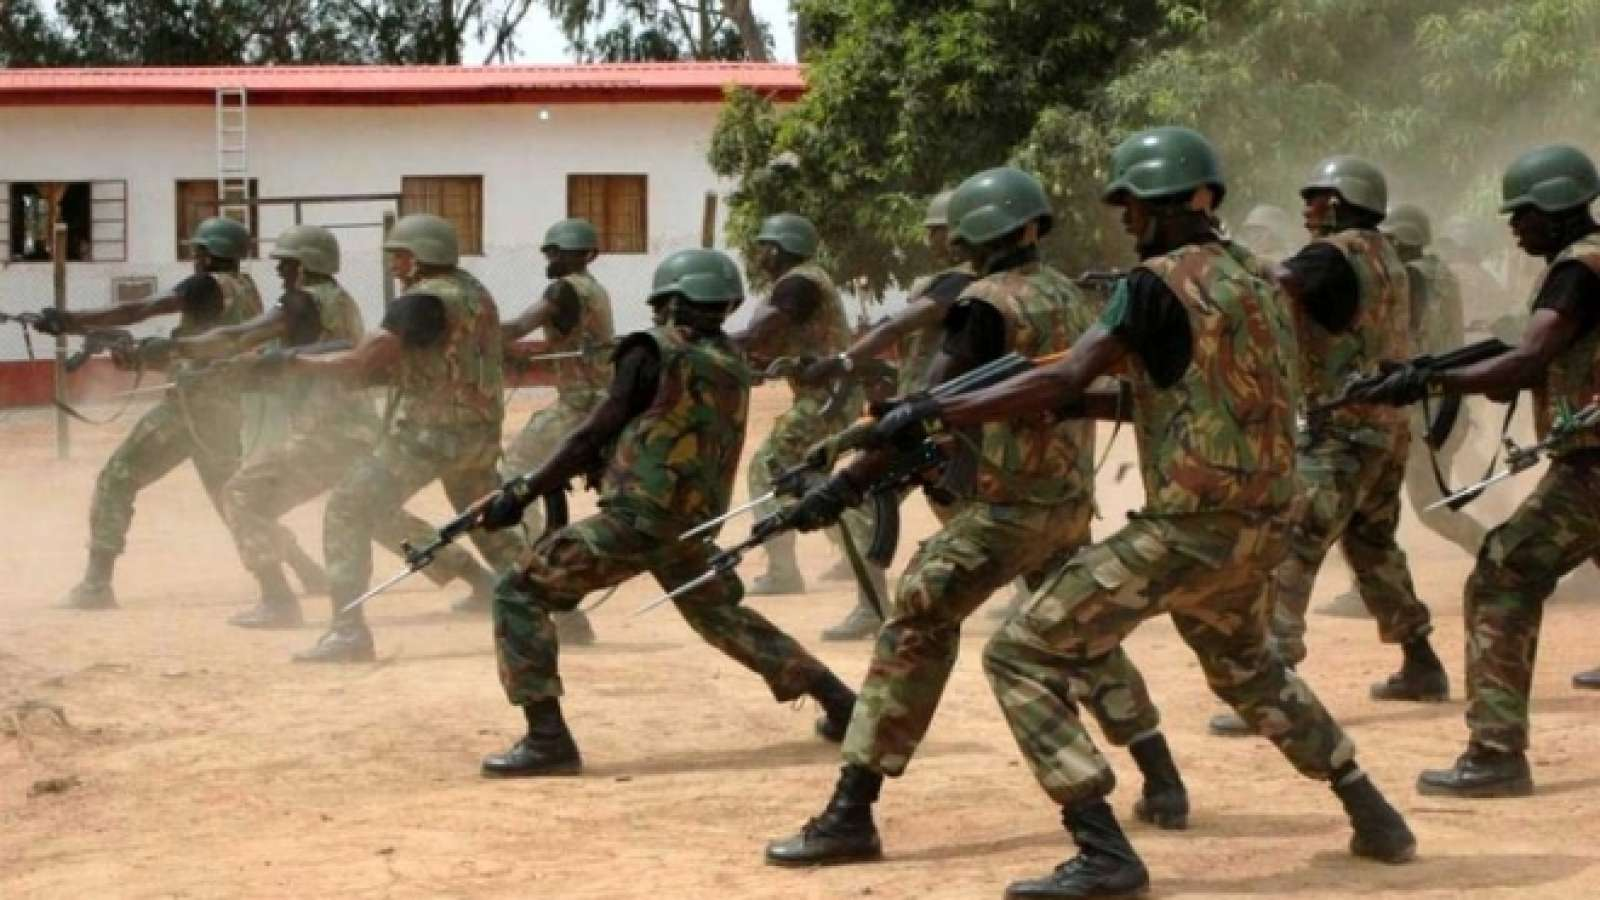 In an operation to clear out Boko Haram from Jarawa community in Kala Balge Local Government Area of Borno State, soldiers released over 1000 residents and killed 21 terrorists. Image courtesy: Newsflash